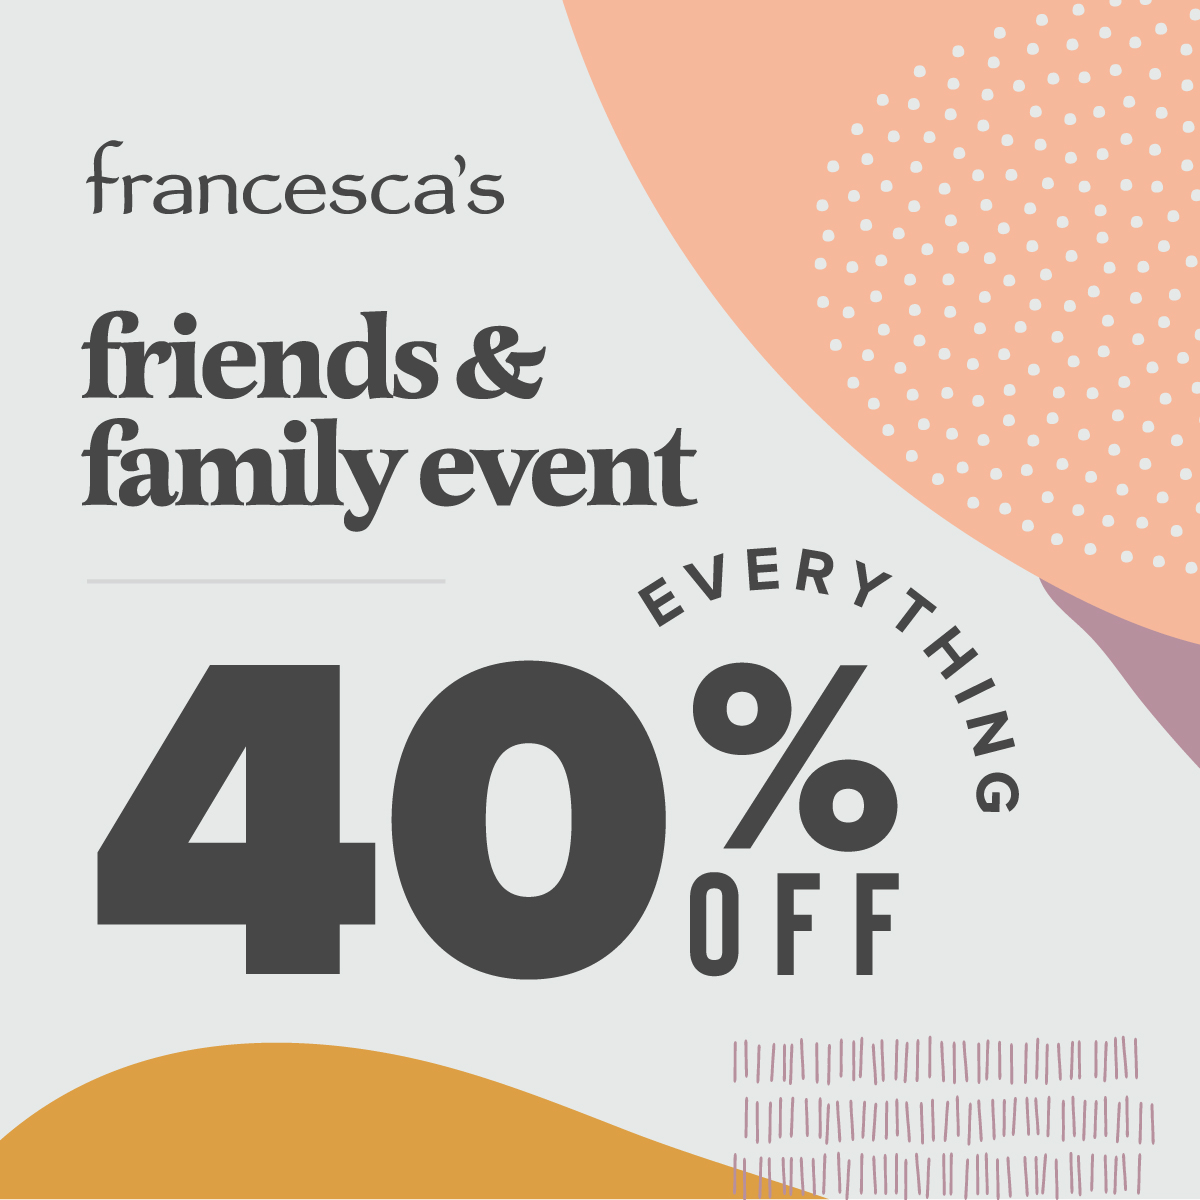 Francesca's 40% off Everything Friends and Family Discount! from francesca's